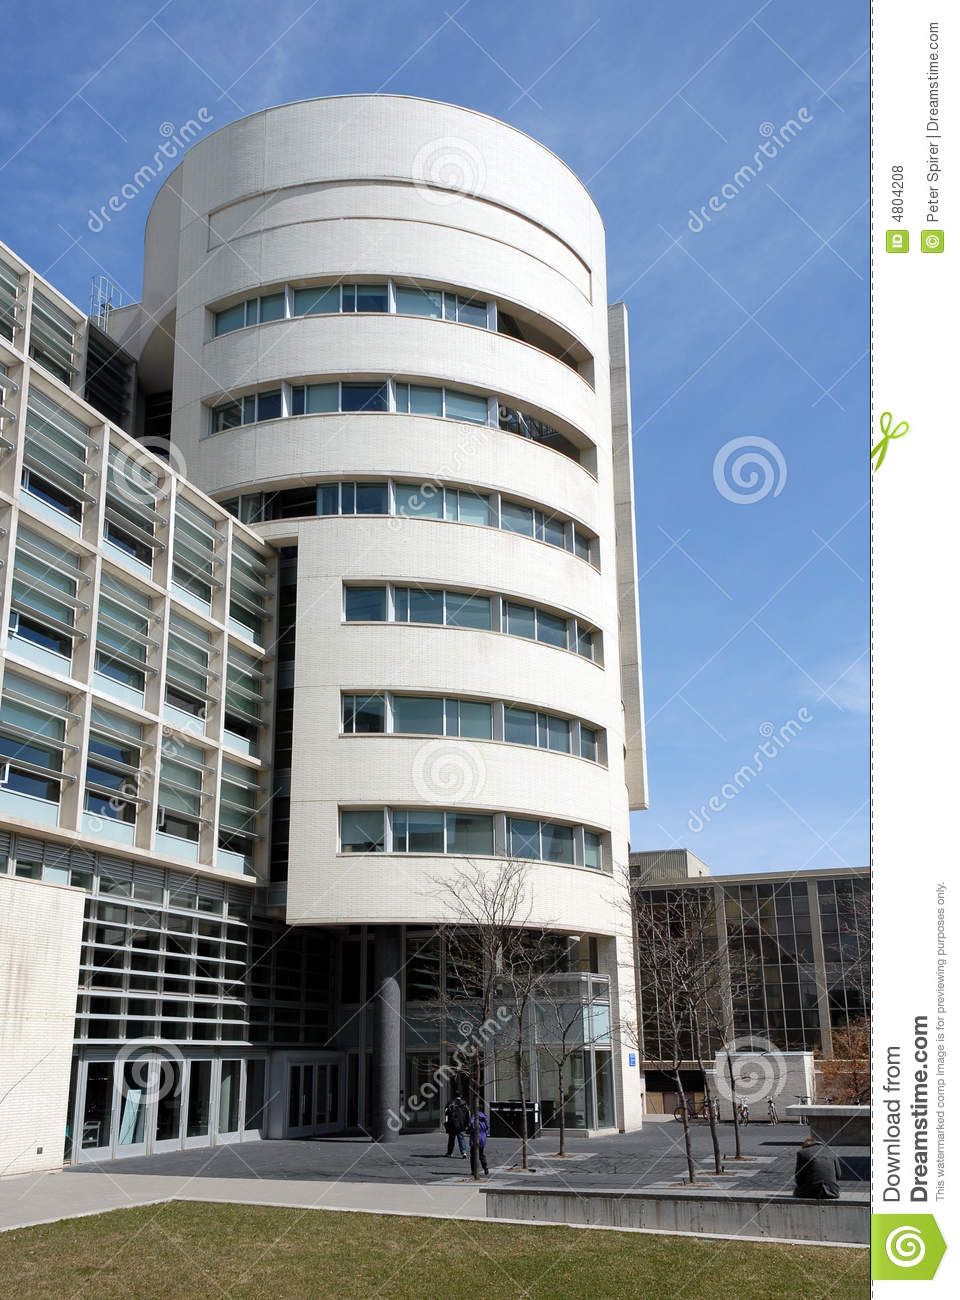 Modern university building stock photo. Image of student ...